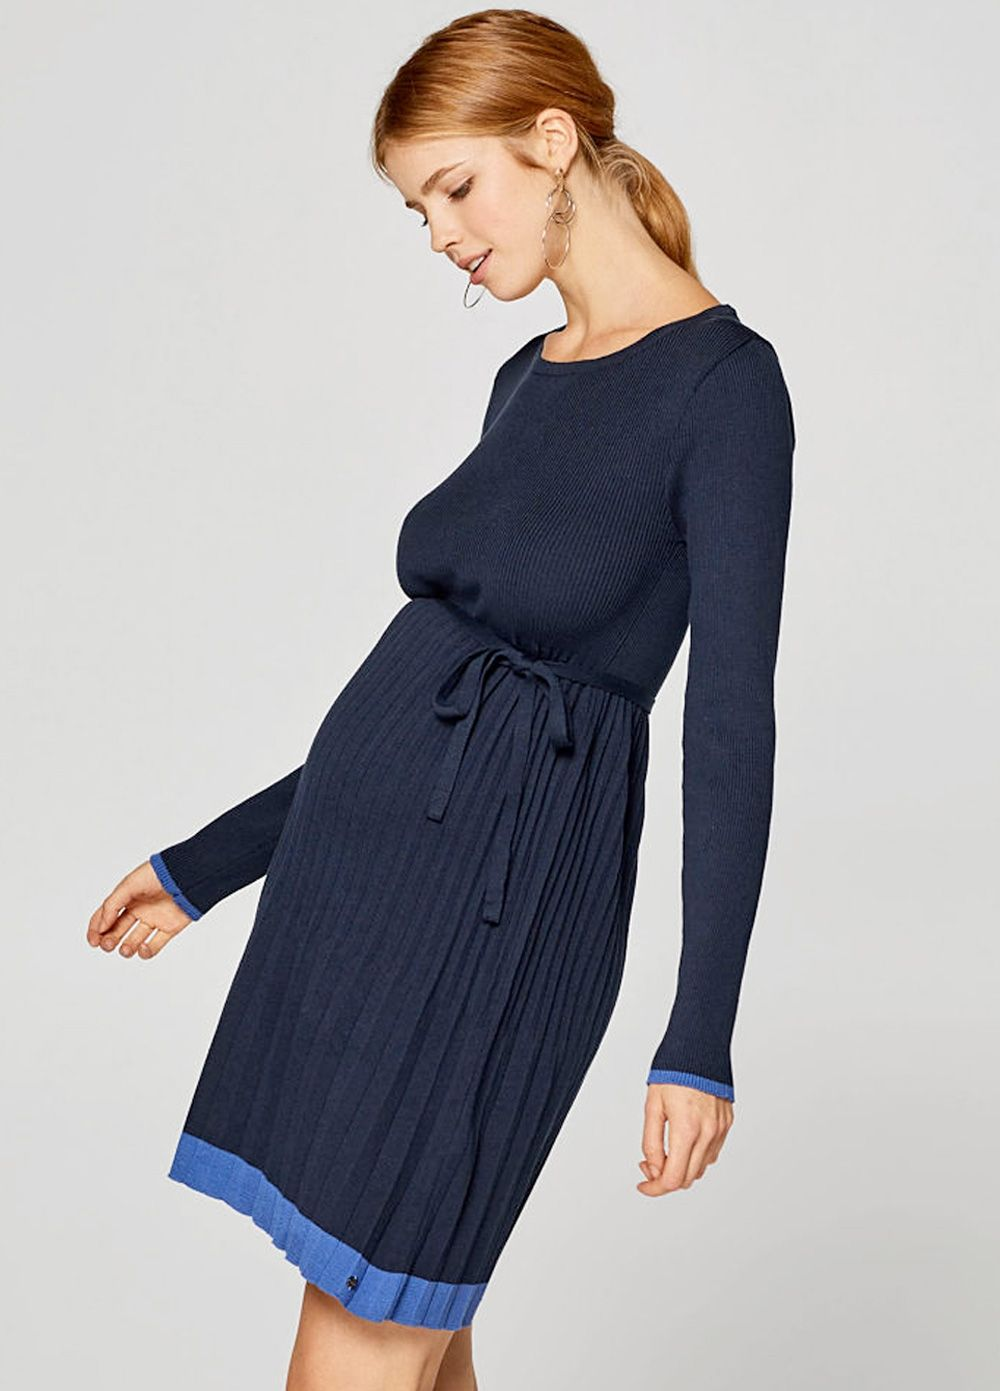 05e5a39a94961 Esprit - Pleated Knit Dress. Find this Pin and more on : Esprit Maternity  ...